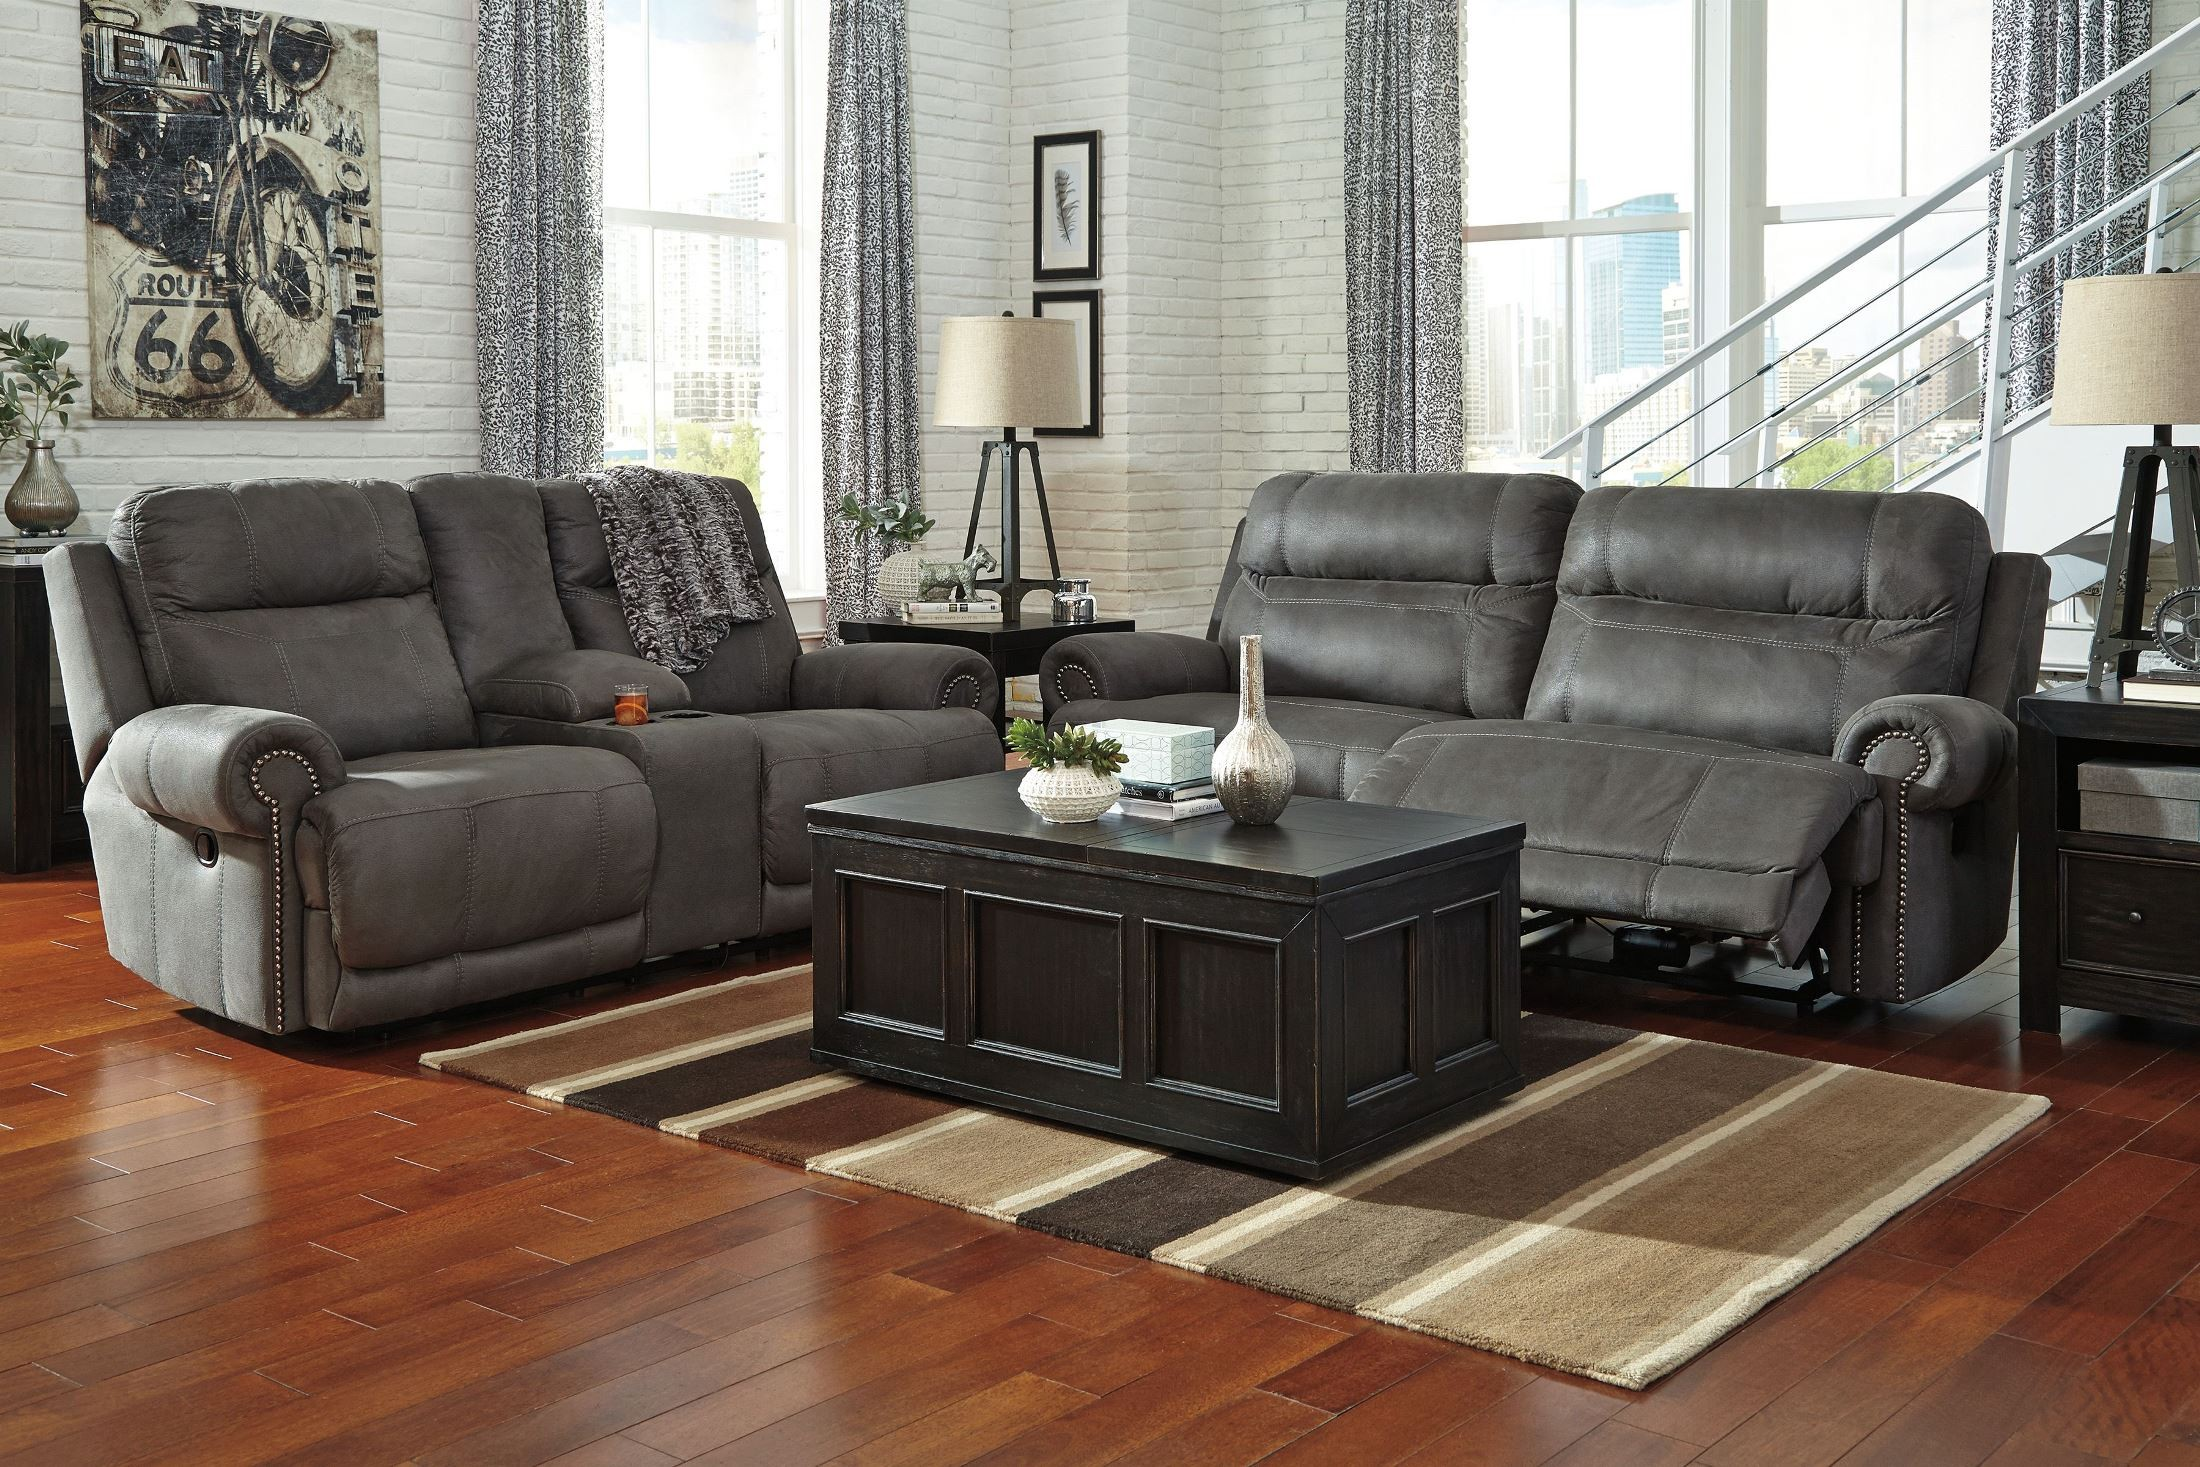 Austere Gray Reclining Sofa From Ashley 3840181 Coleman Furniture